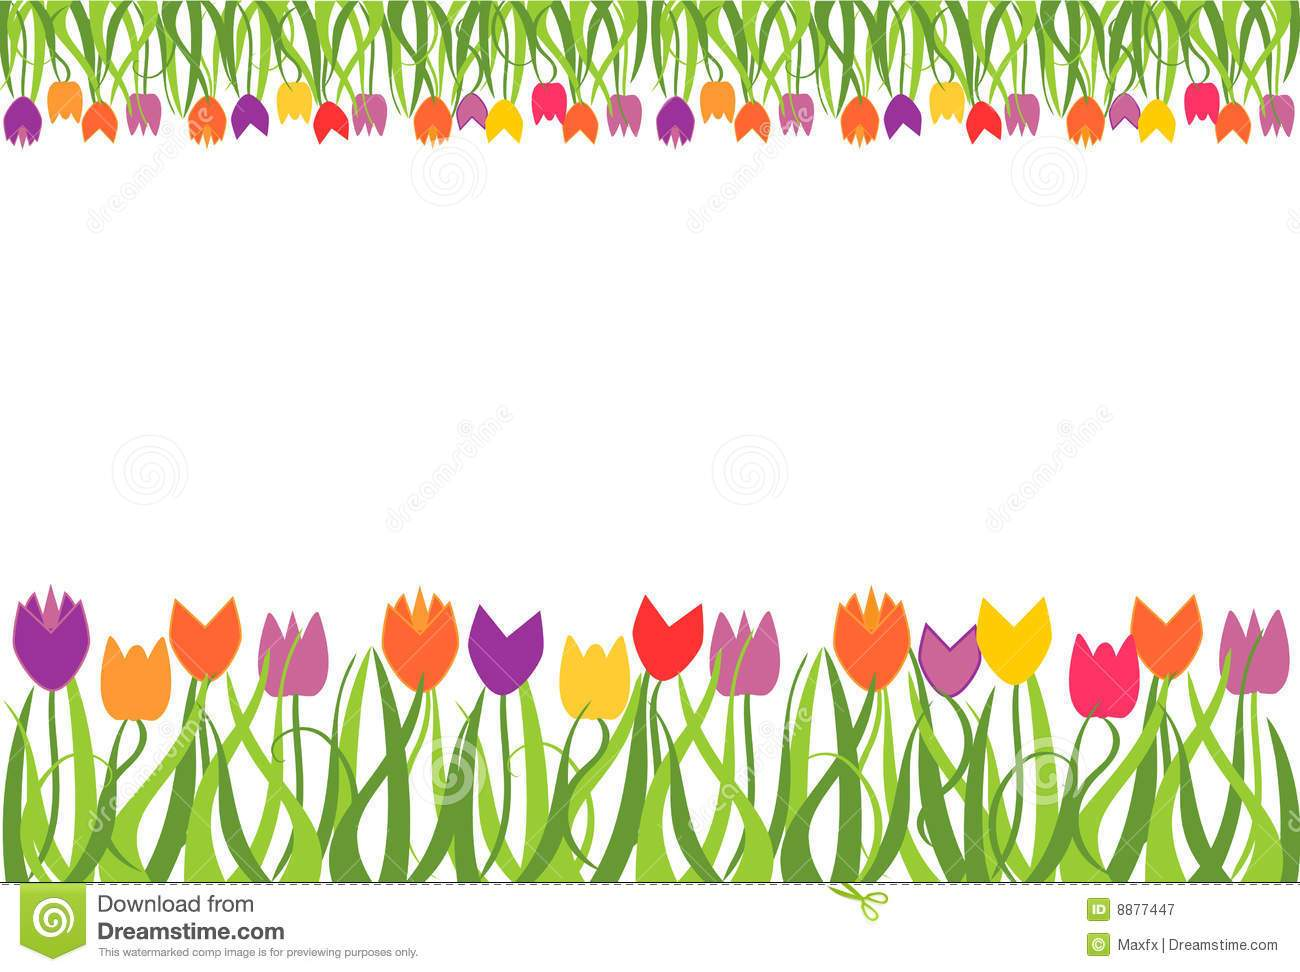 Spring flowers border clipart 6 » Clipart Portal.